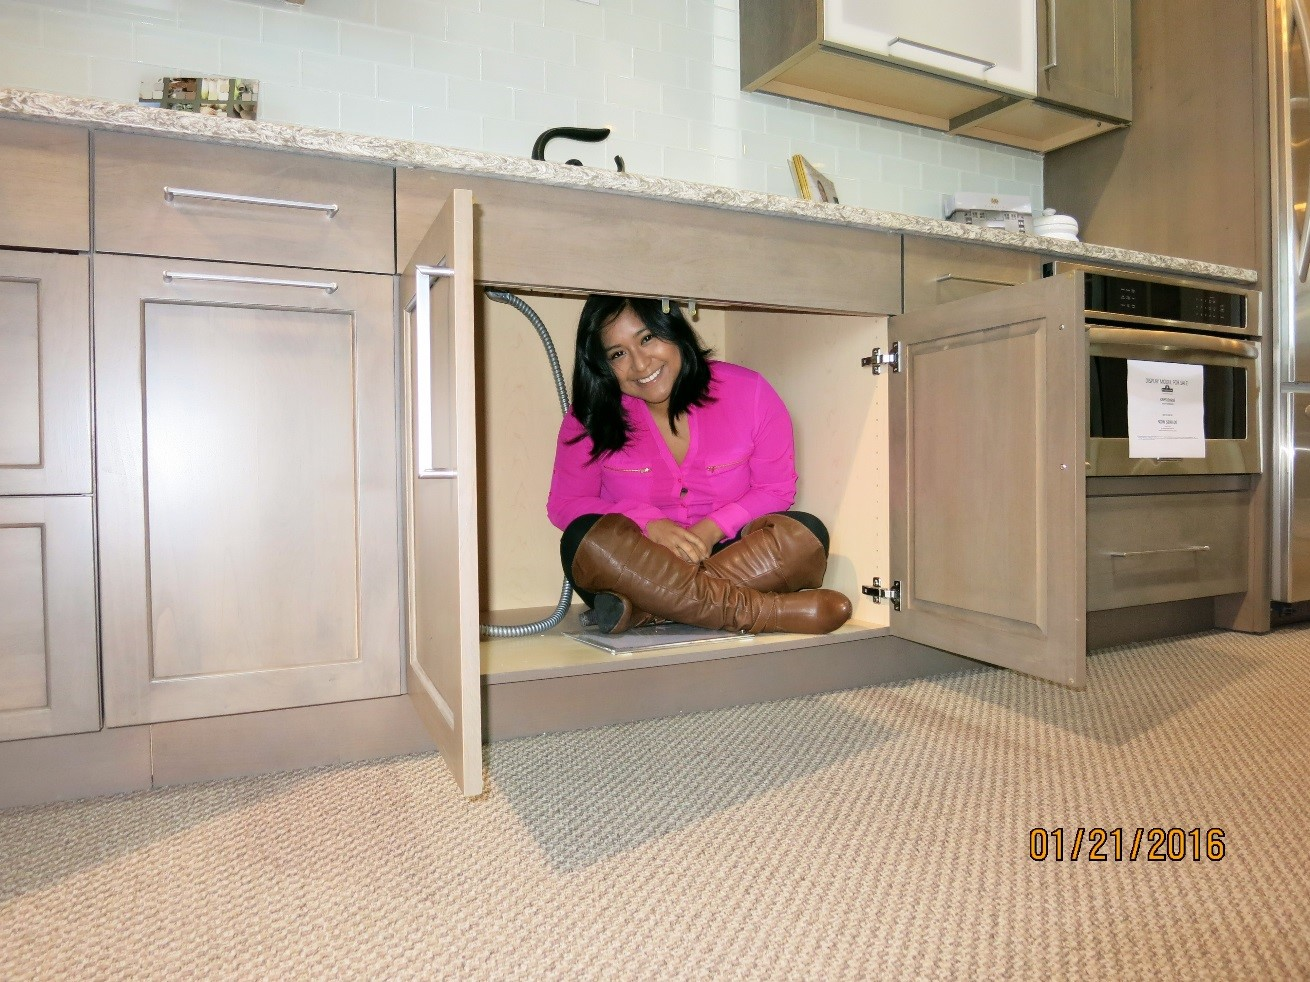 In the cabinet5 kitchen cabinets accessories for a sink base